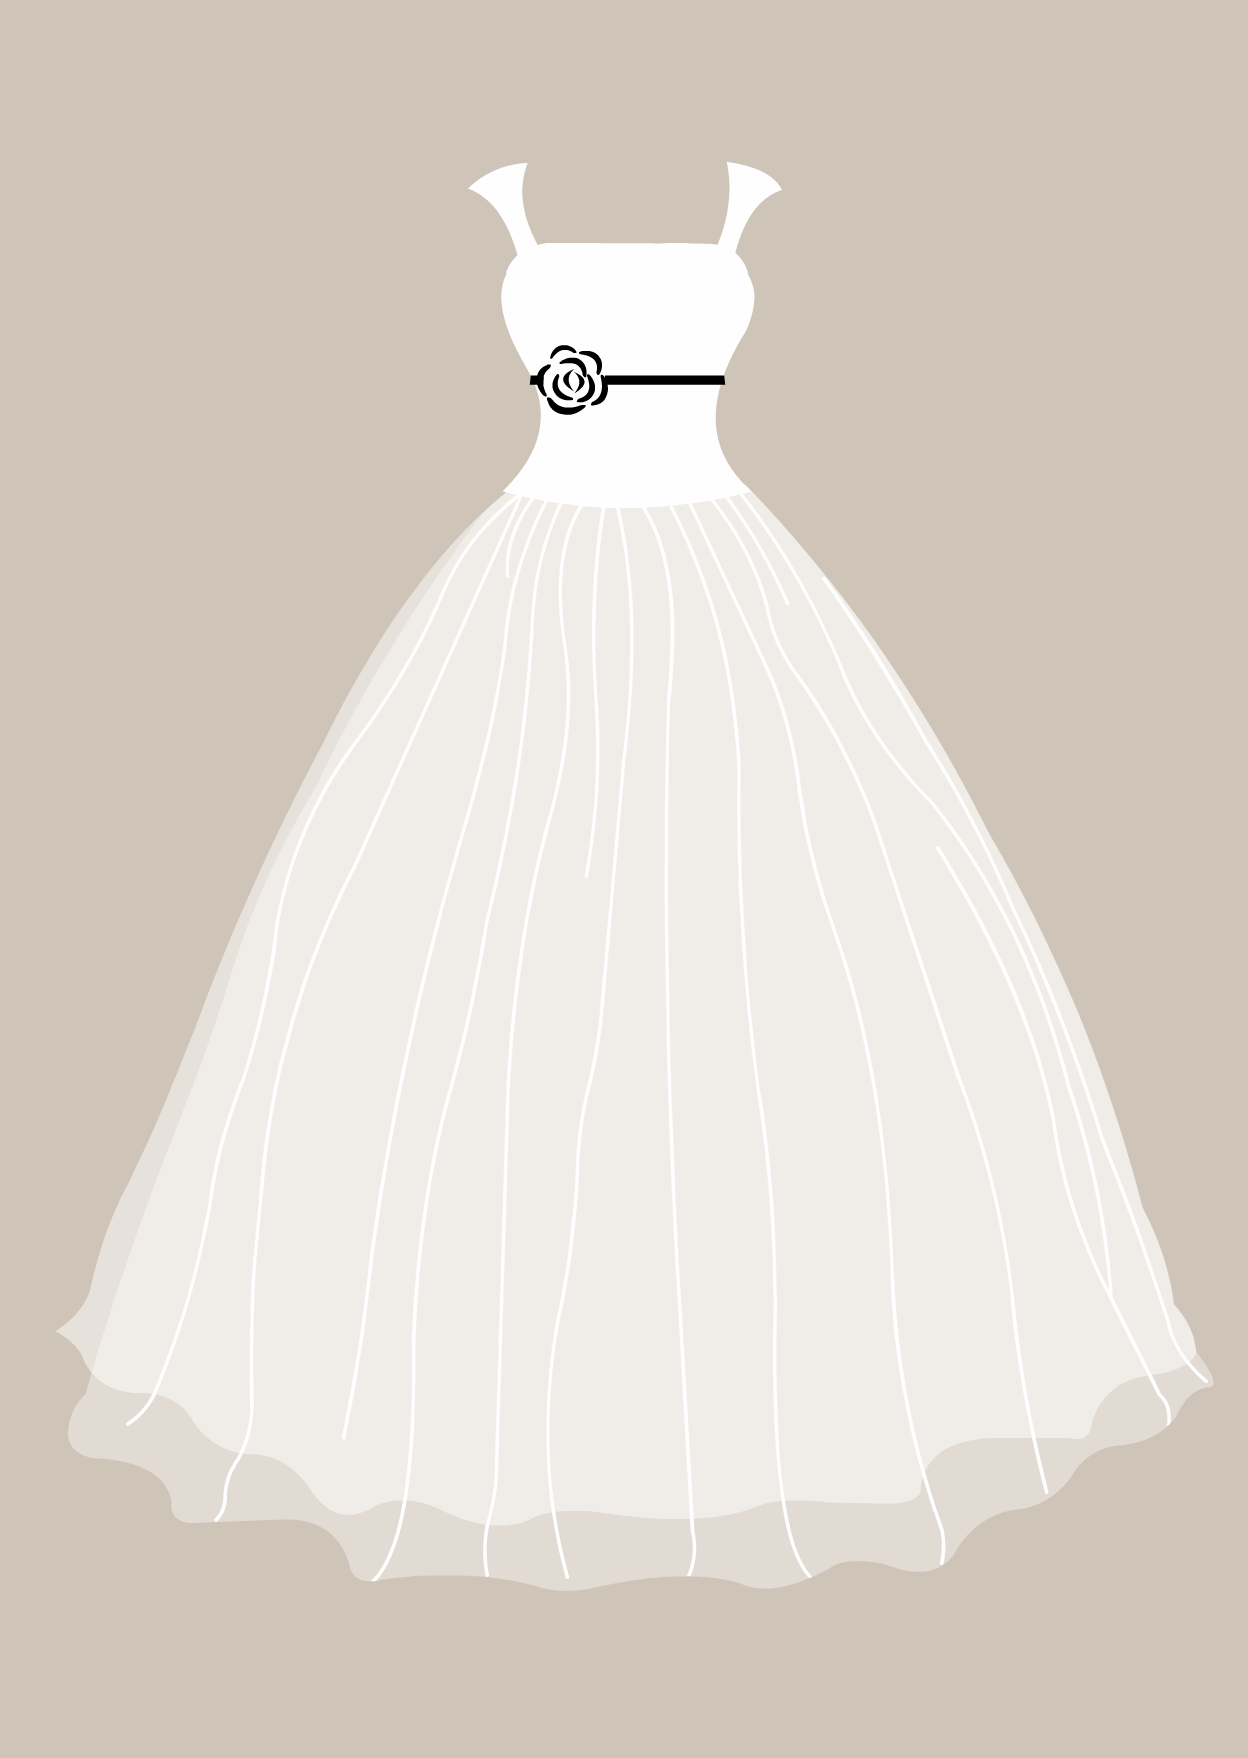 Free Wedding Dress Clipart, Download Free Clip Art, Free.